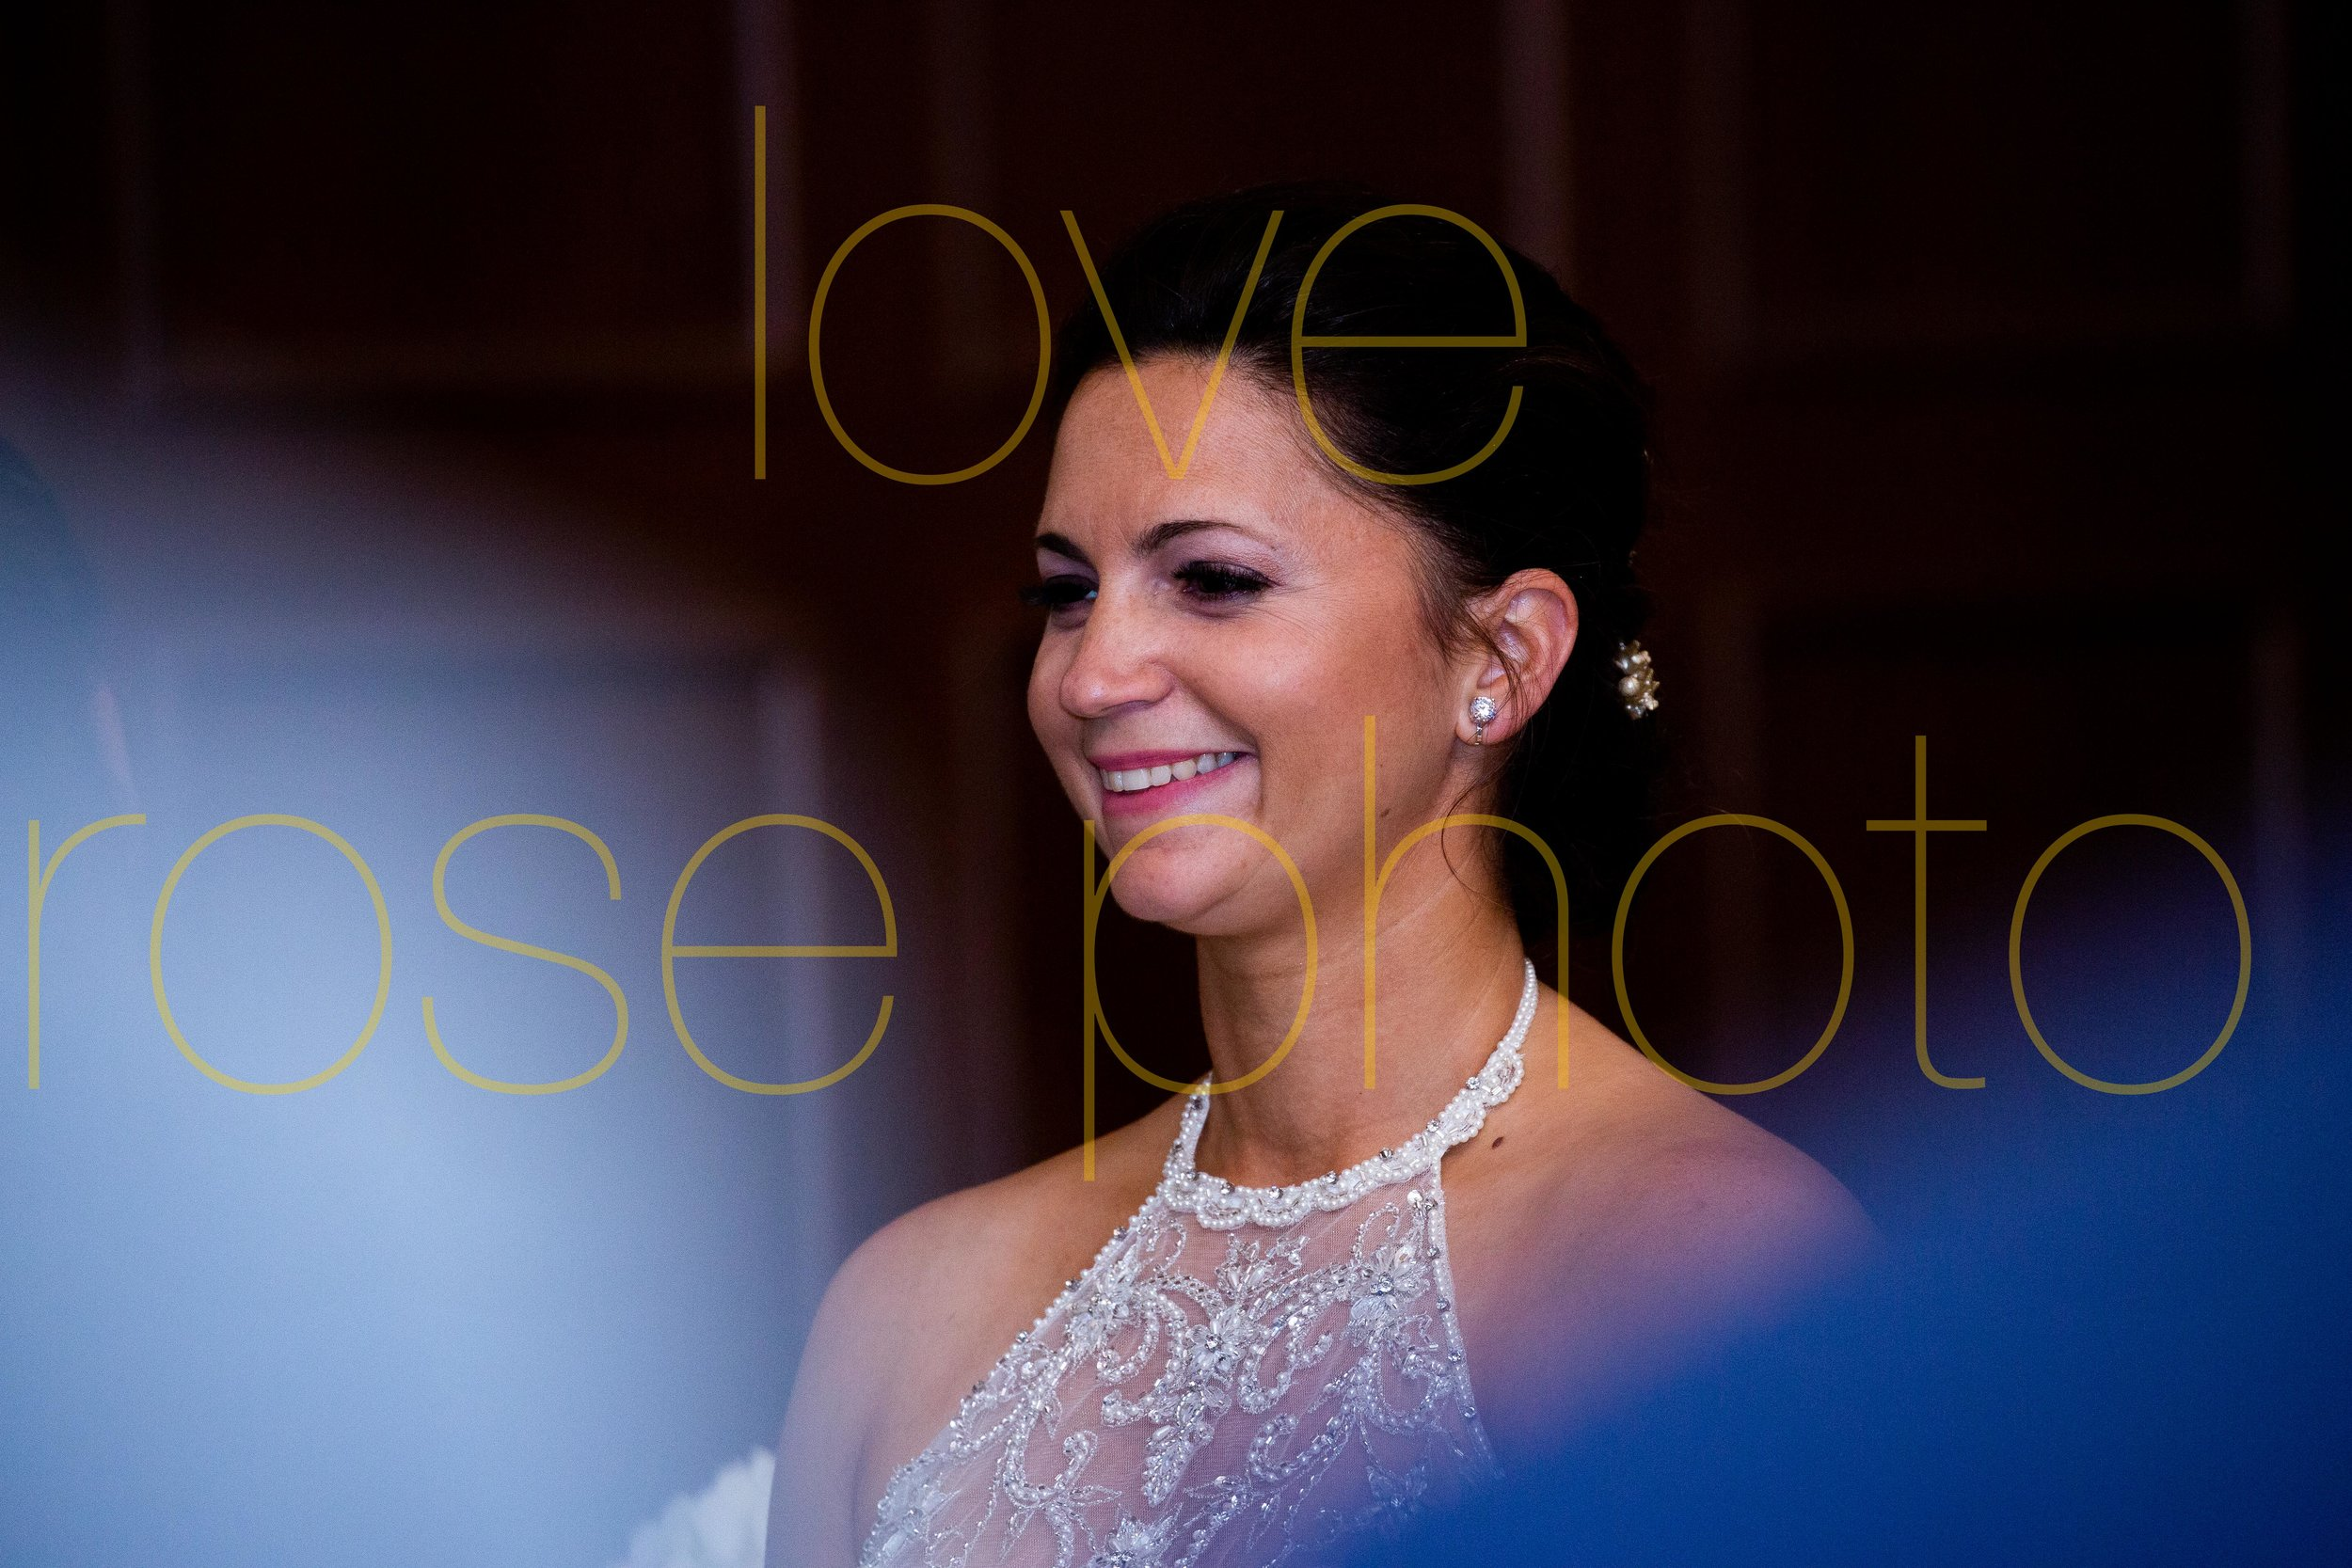 sophie + melissa love rose photo gay wedding chicago pride 2019 -57.jpg